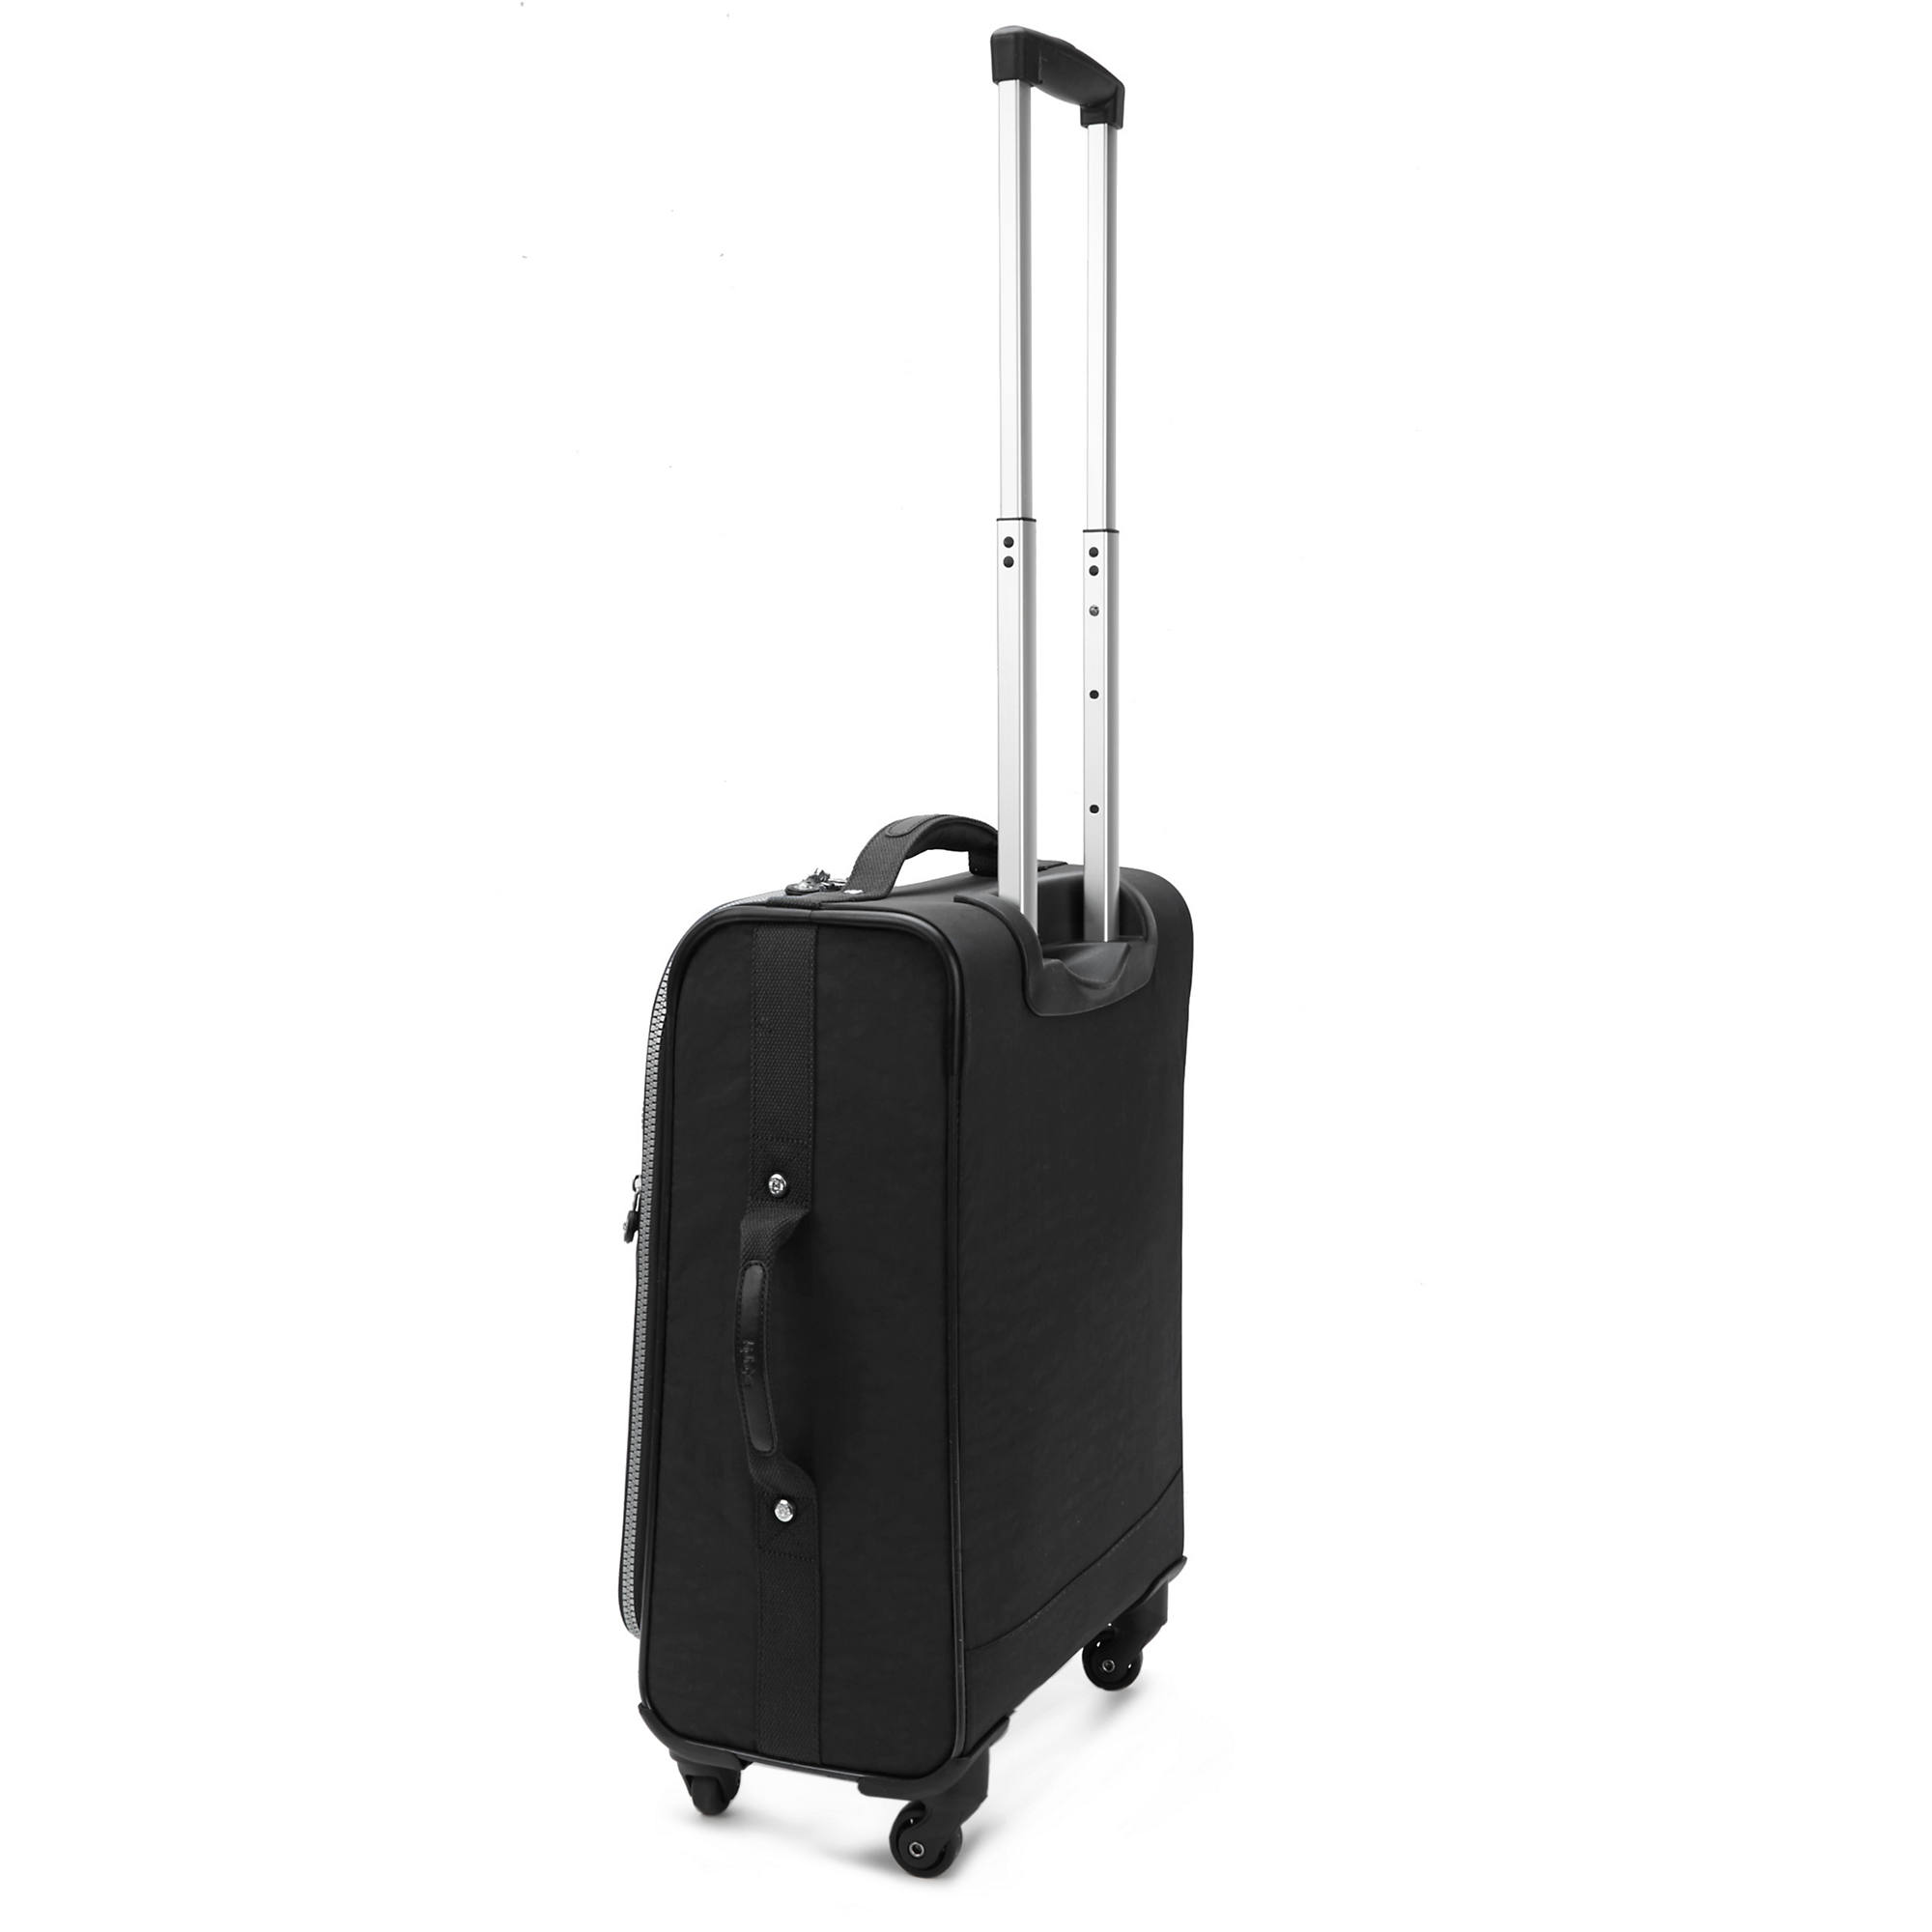 Parker Small Carry-On Rolling Luggage | Kipling